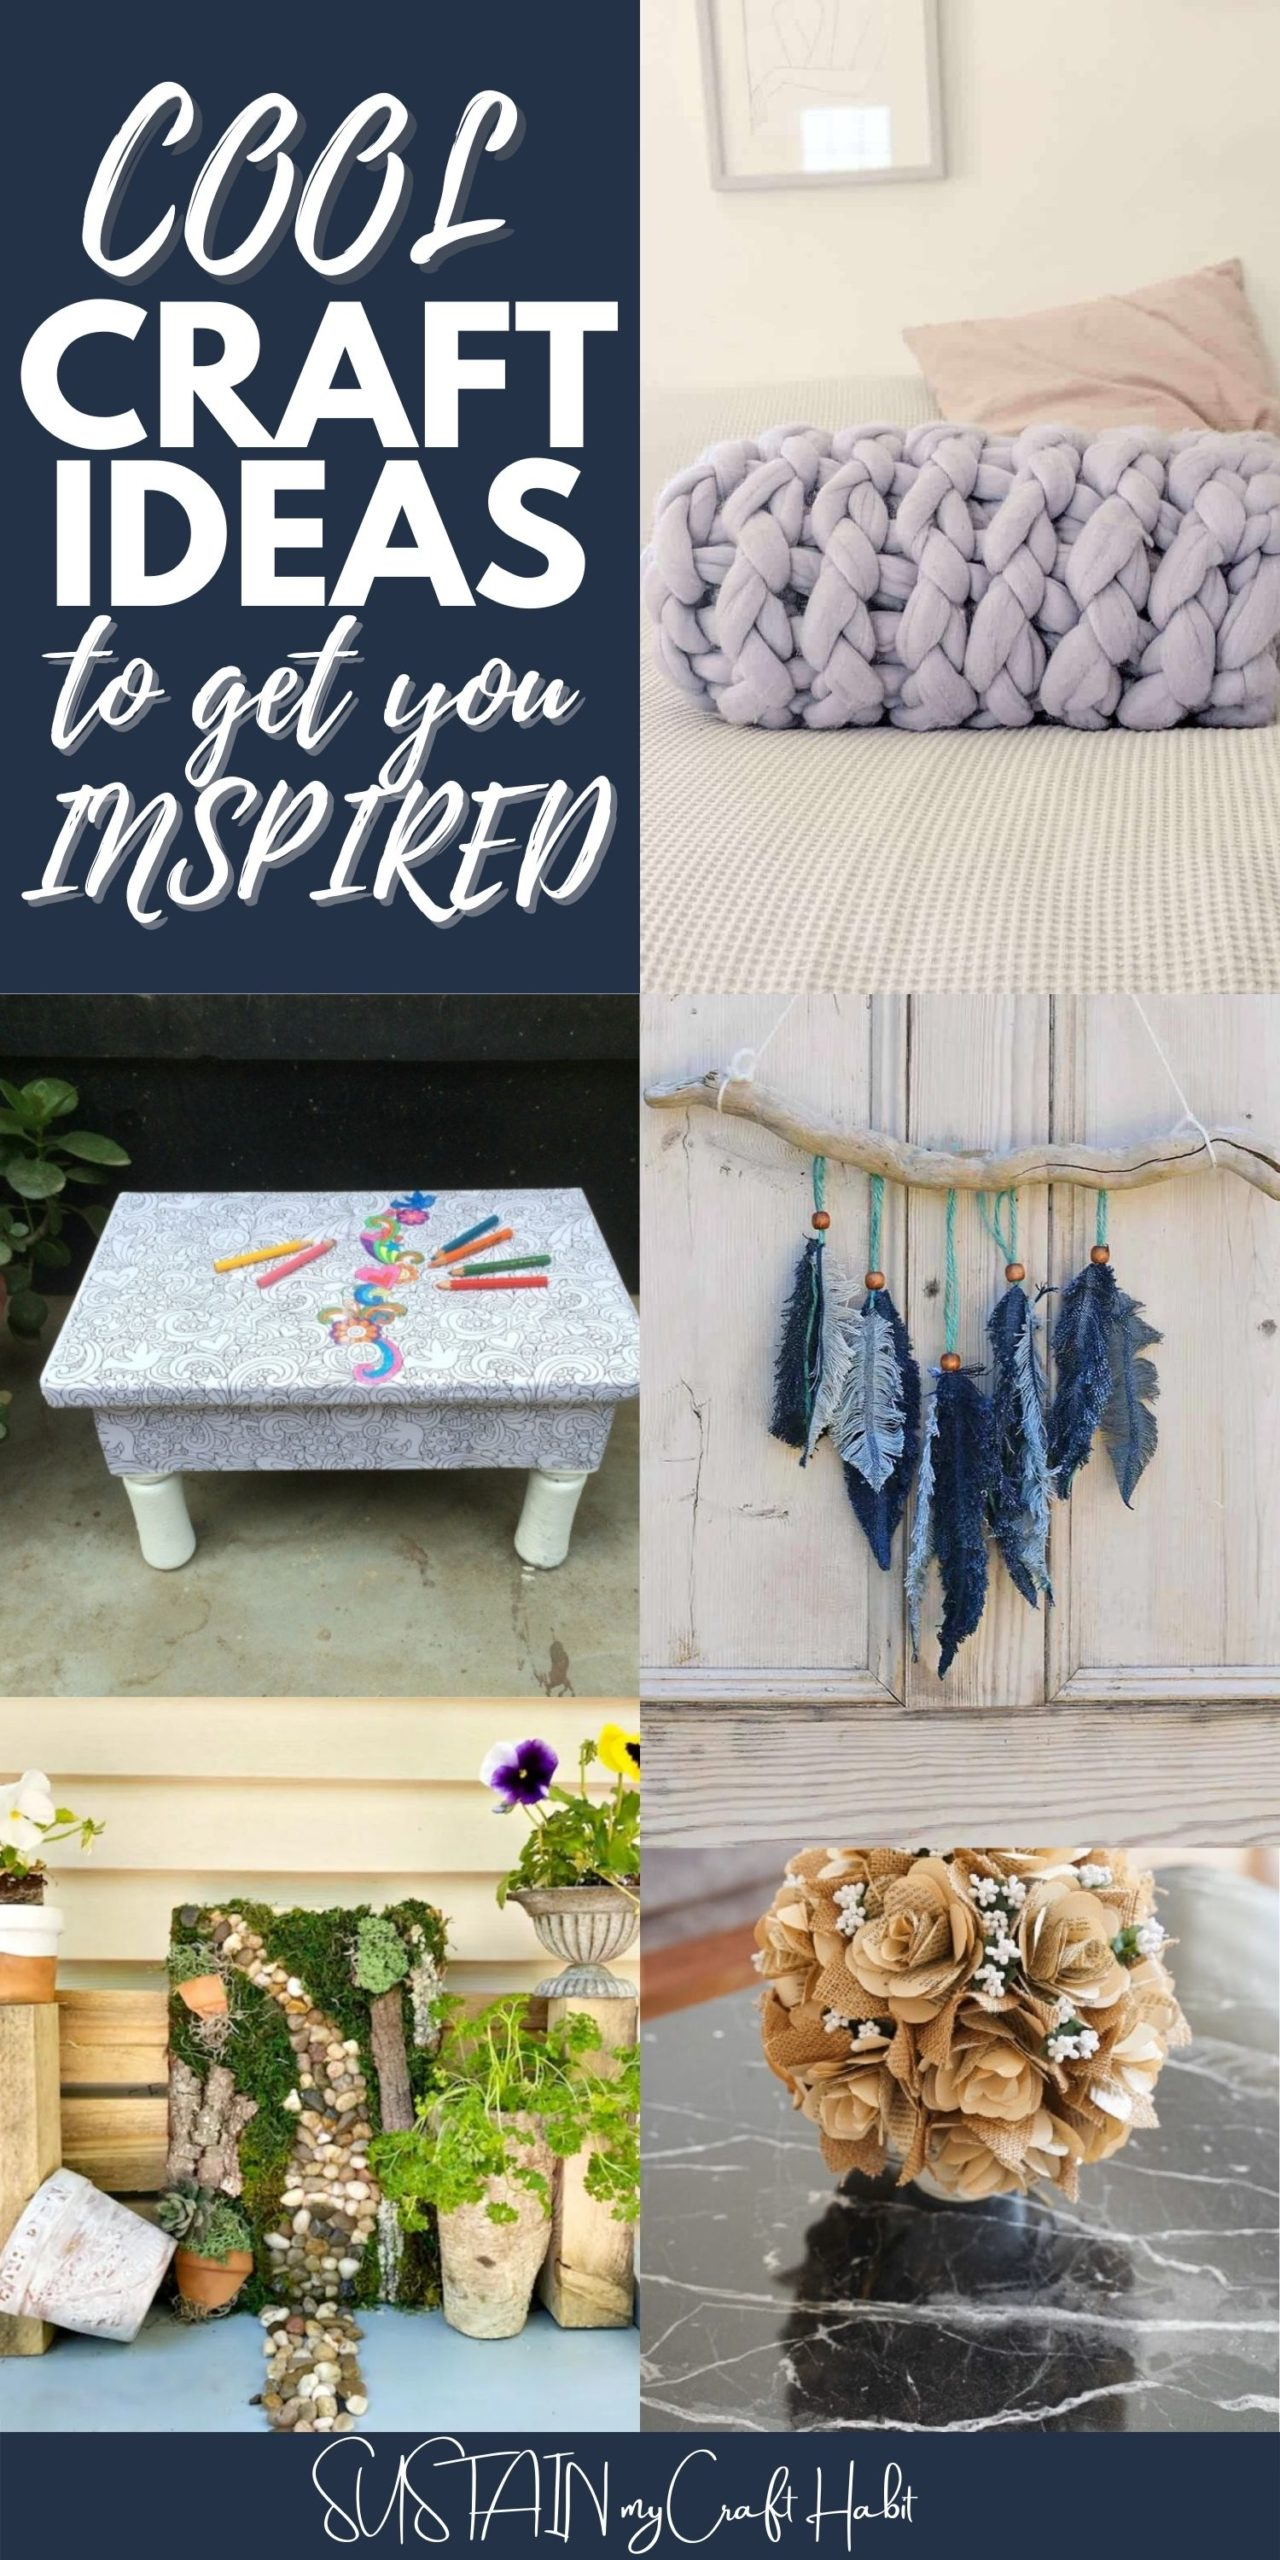 """Collage of images with text overlay reading """"Cool craft ideas to get you inspired""""."""